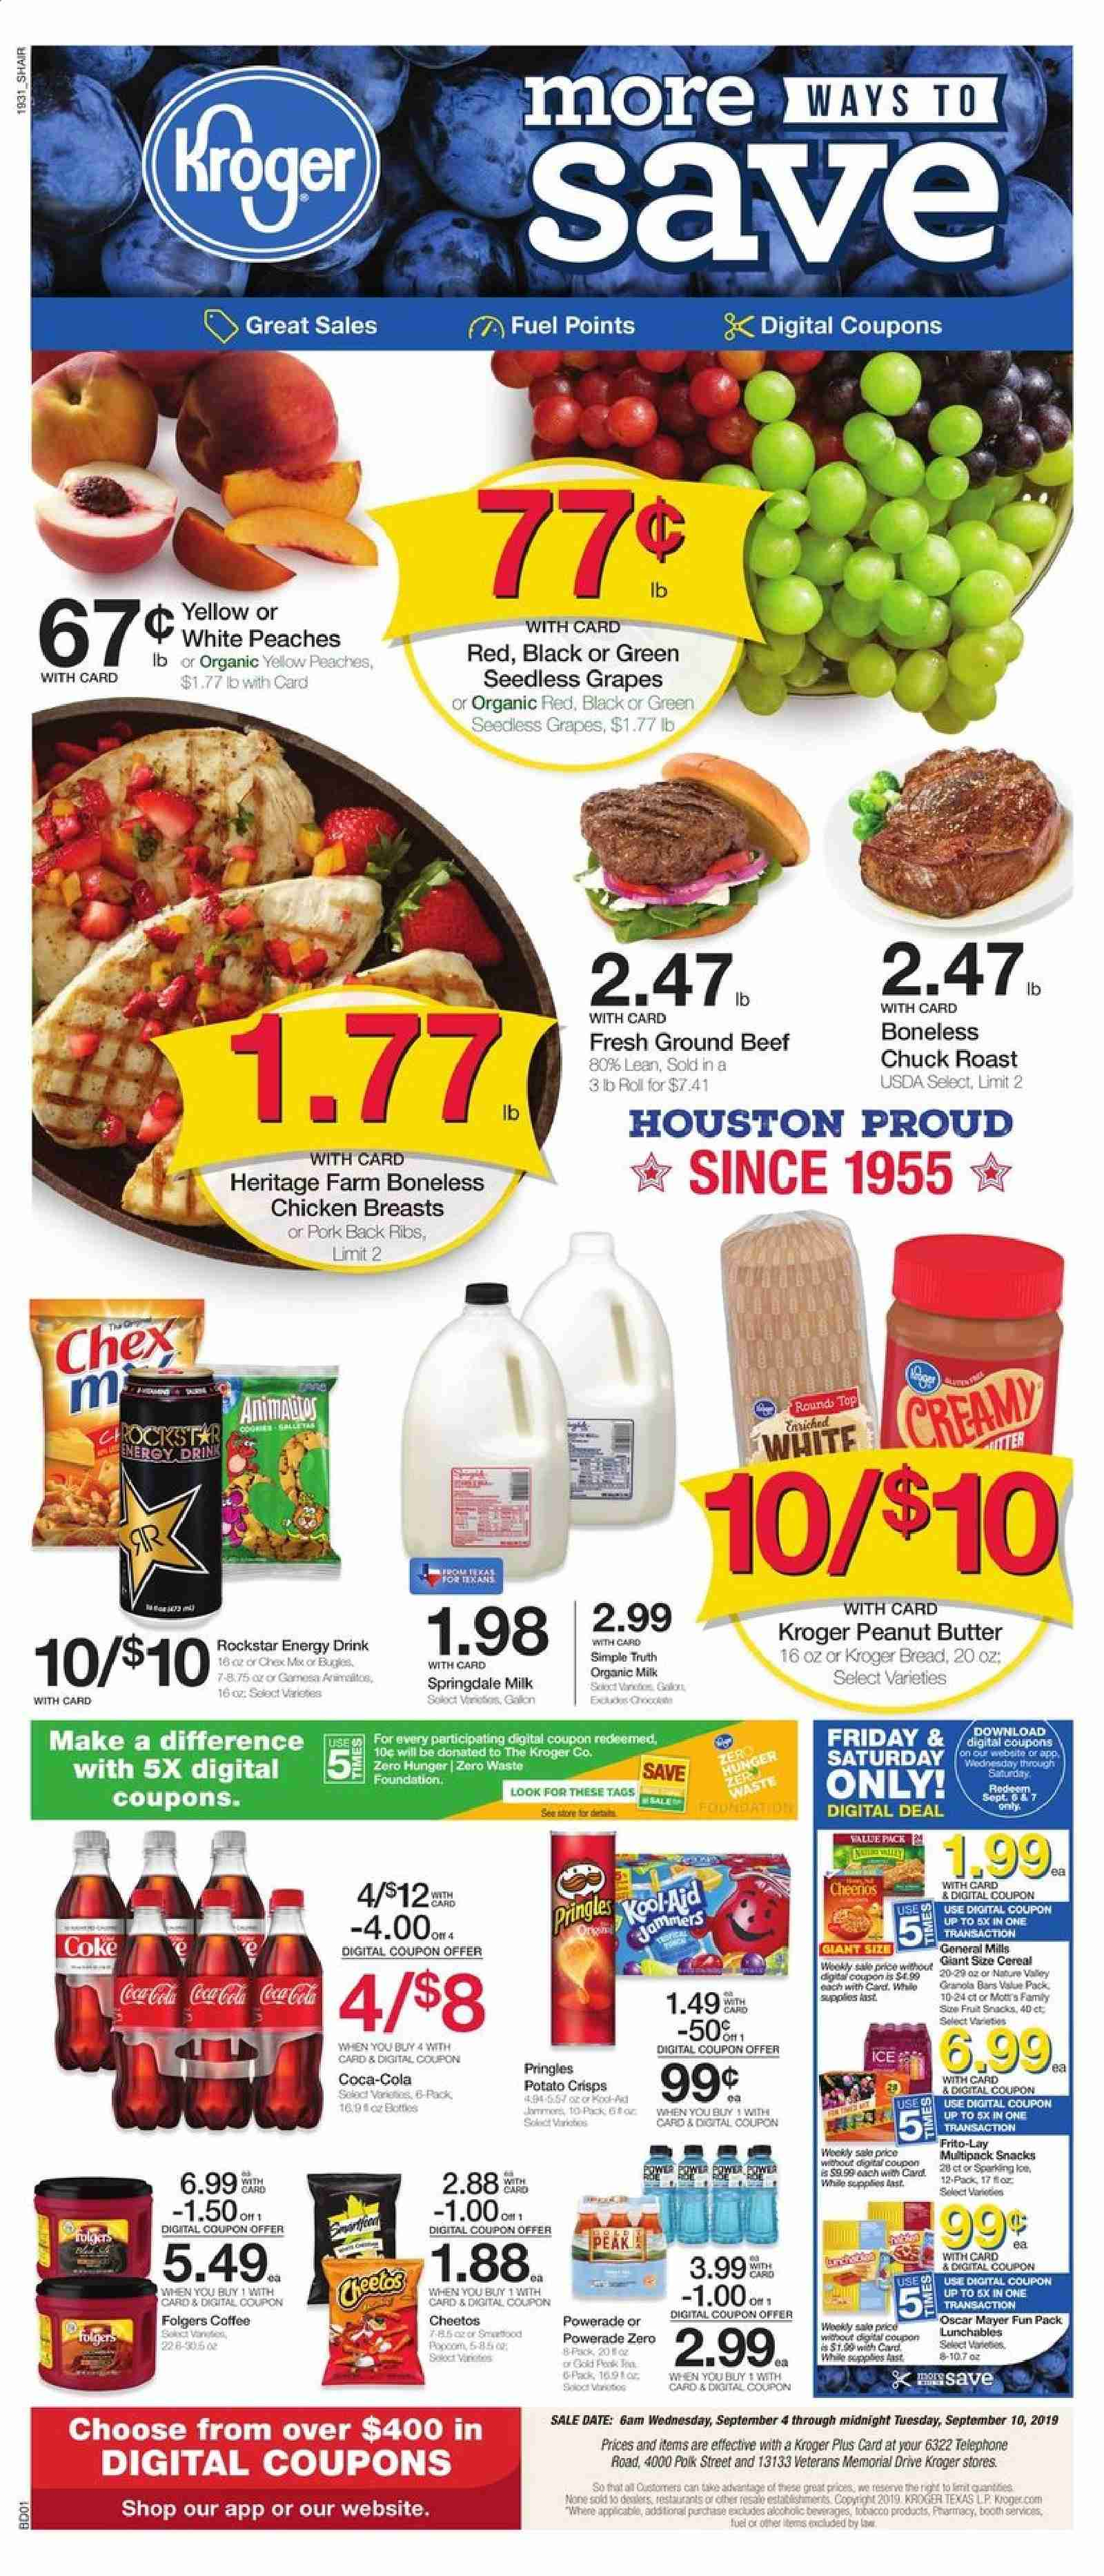 Kroger Flyer - 09.04.2019 - 09.10.2019 - Sales products - grapes, seedless grapes, peache, bread, organic milk, potato crisps, Pringles, Cheetos, snack, cereals, Cheerios, peanut butter, Coca-Cola, Powerade, energy drink, coffee, Folgers, chicken, chicken breast, beef meat, ground beef, pork meat, fuel, ribs. Page 1.